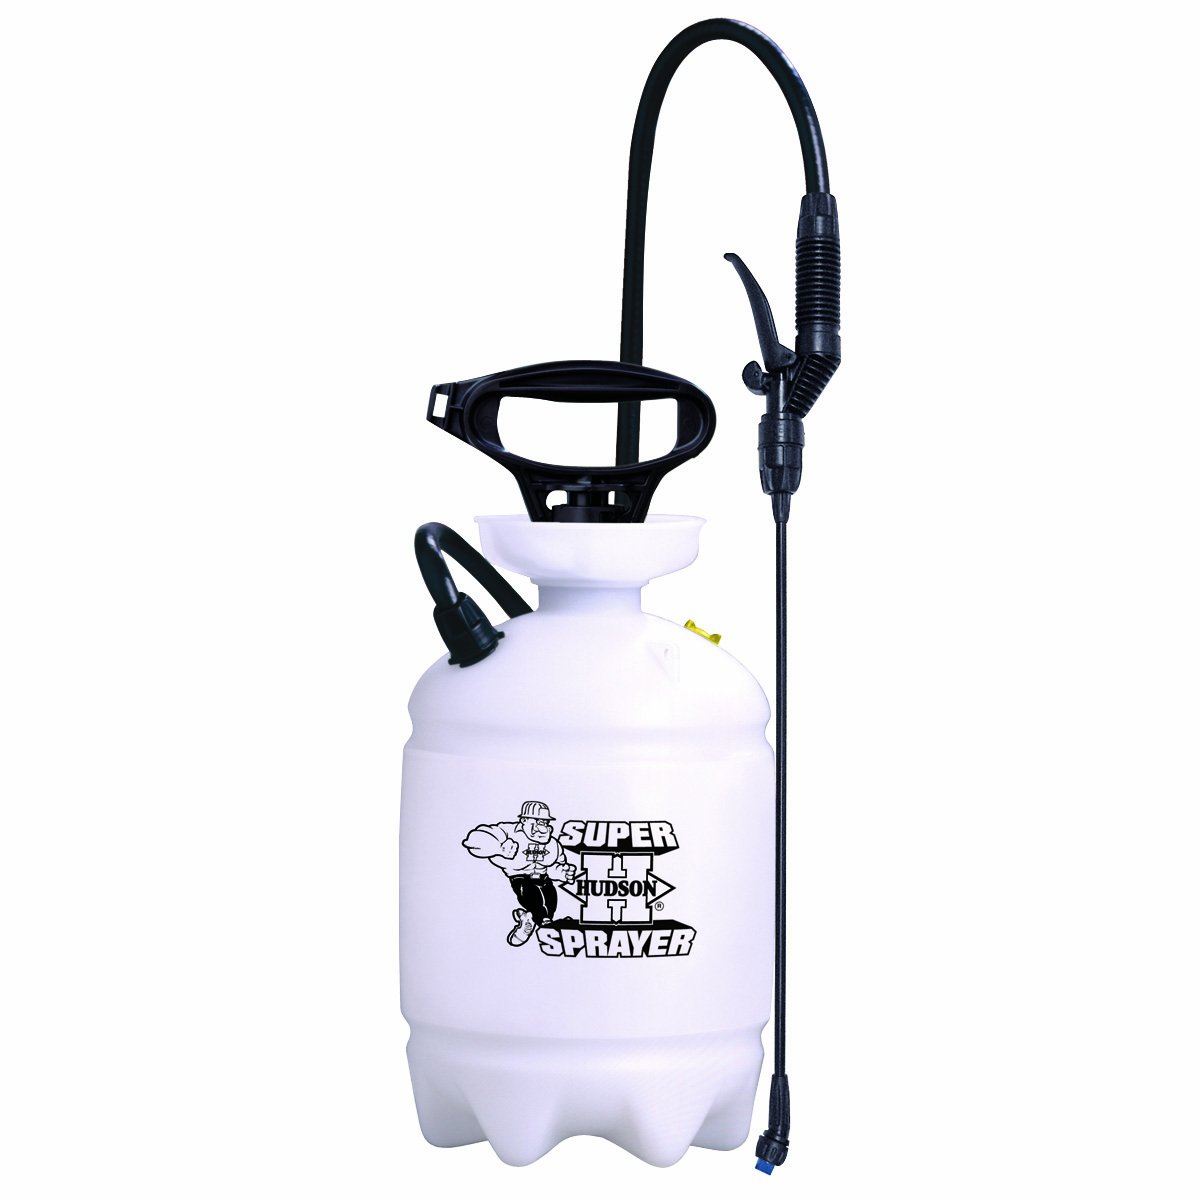 Hudson 90162 Super Sprayer Professional 2 Gallon Sprayer Poly